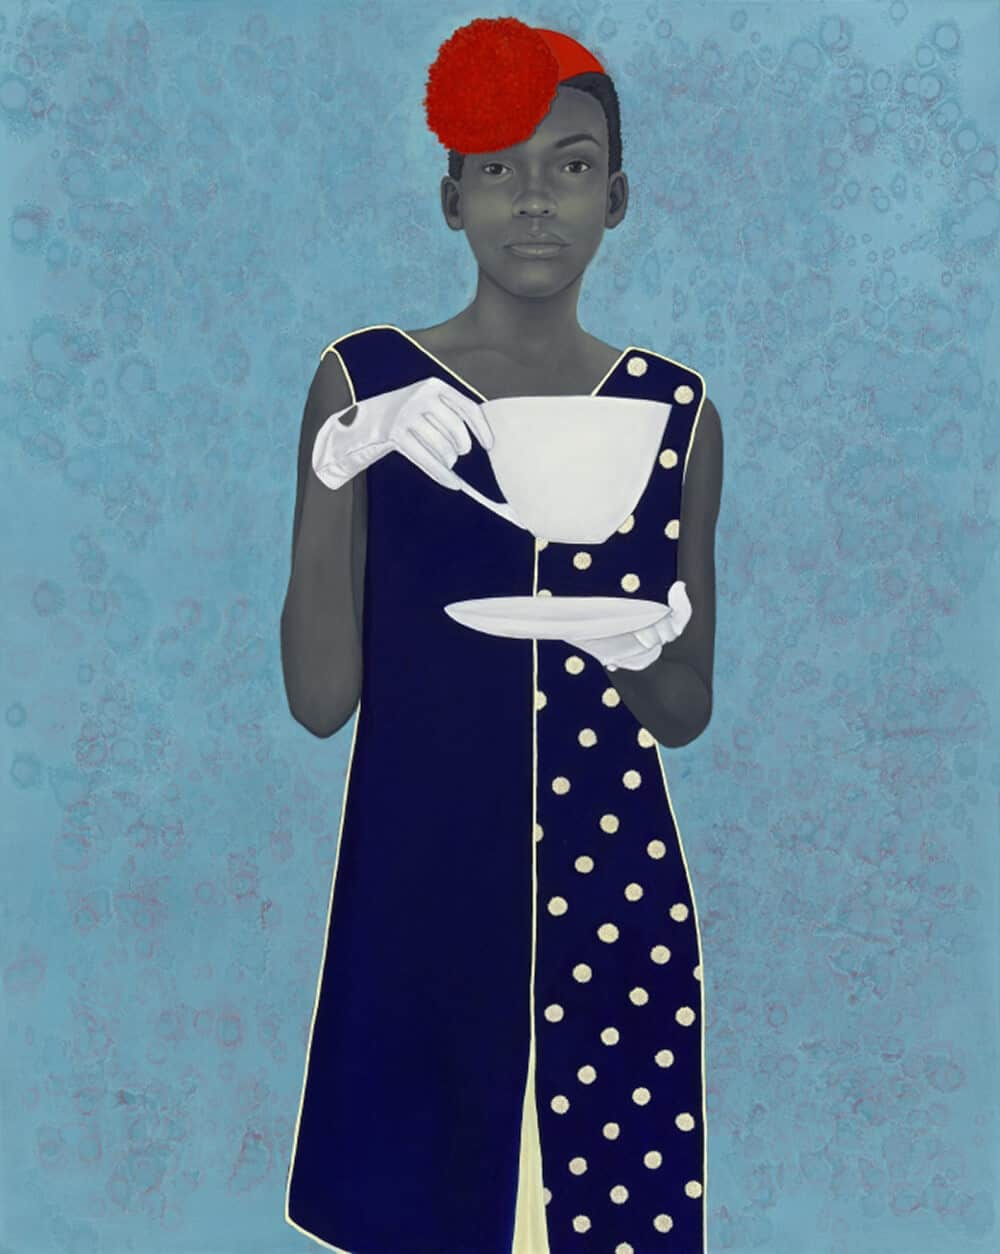 Miss Everything (Unsuppressed Deliverance) by Amy Sherald, oil on canvas, 2013. Courtesy of Frances & Burton Reifler © Amy Sherald.